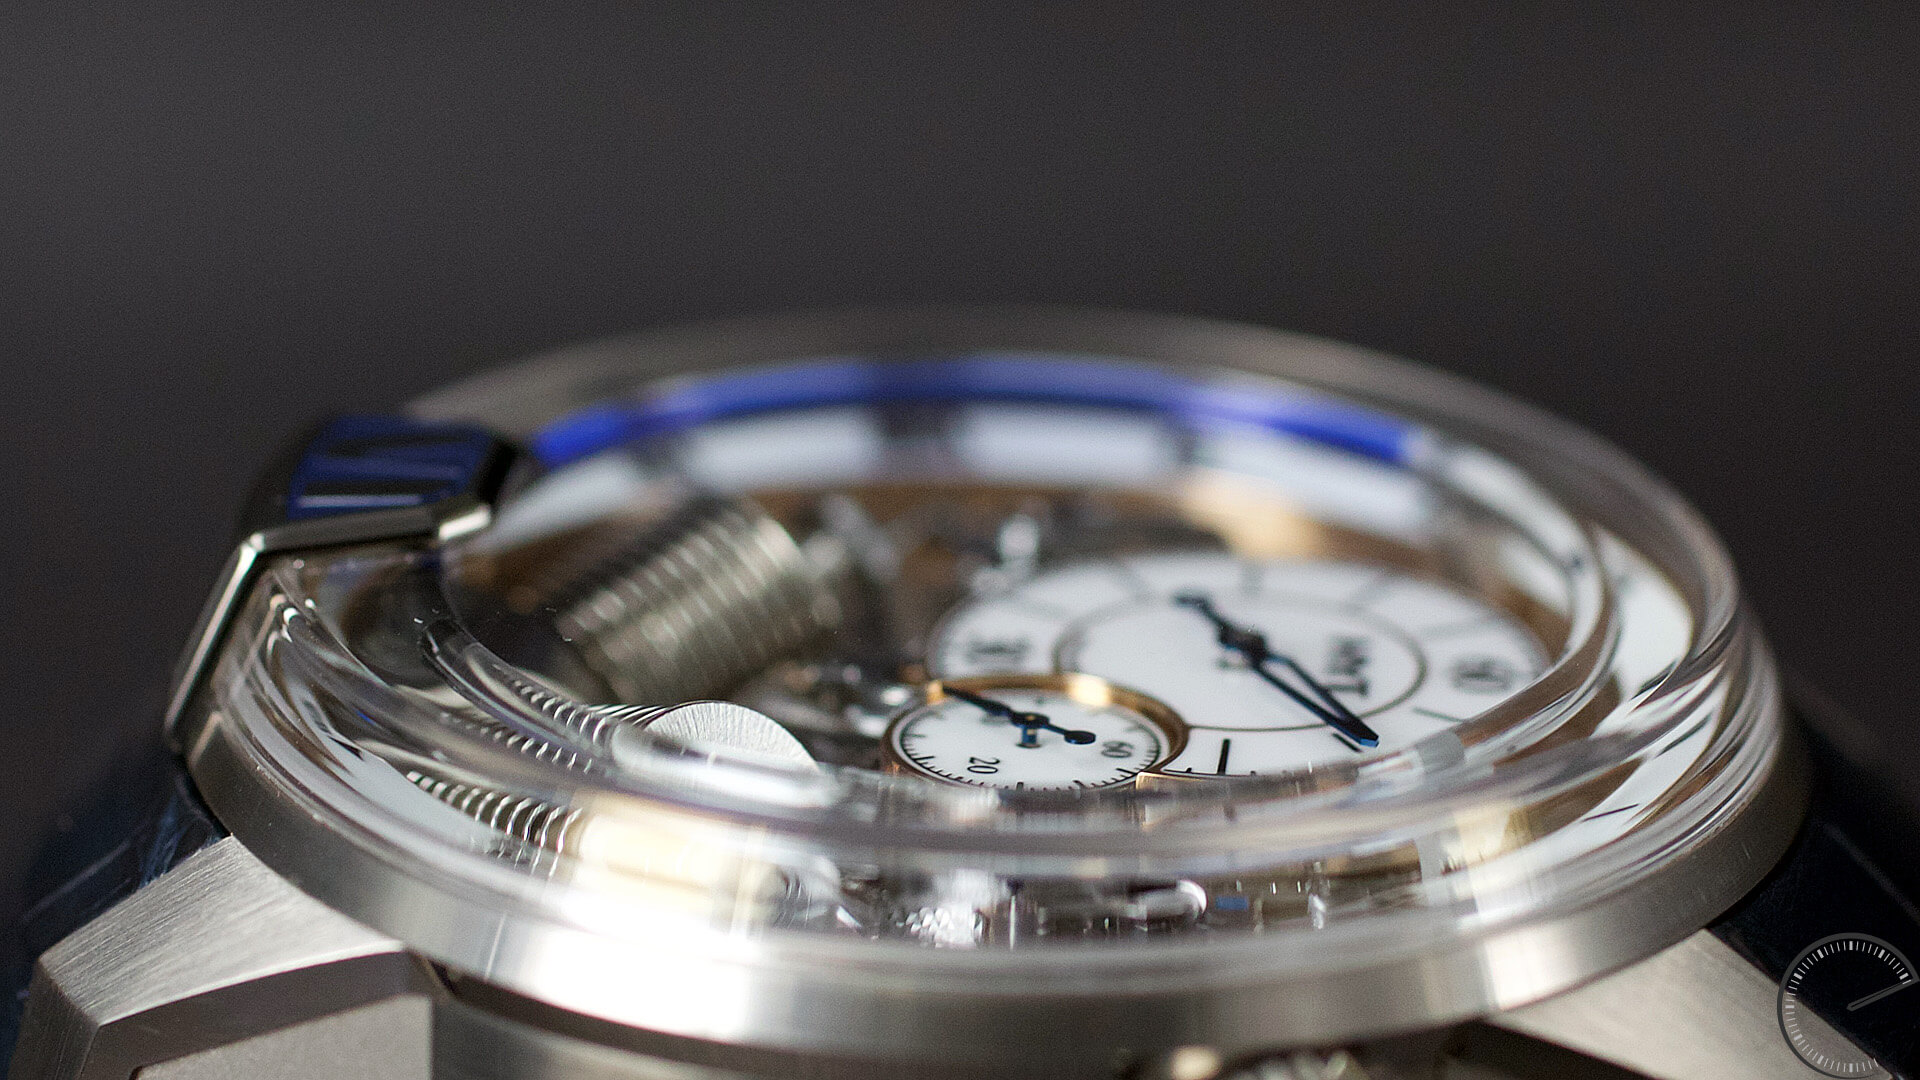 HYT_H2_Tradition_dial3 - ESCAPEMENT Magazine - watch reviews by Angus Davies